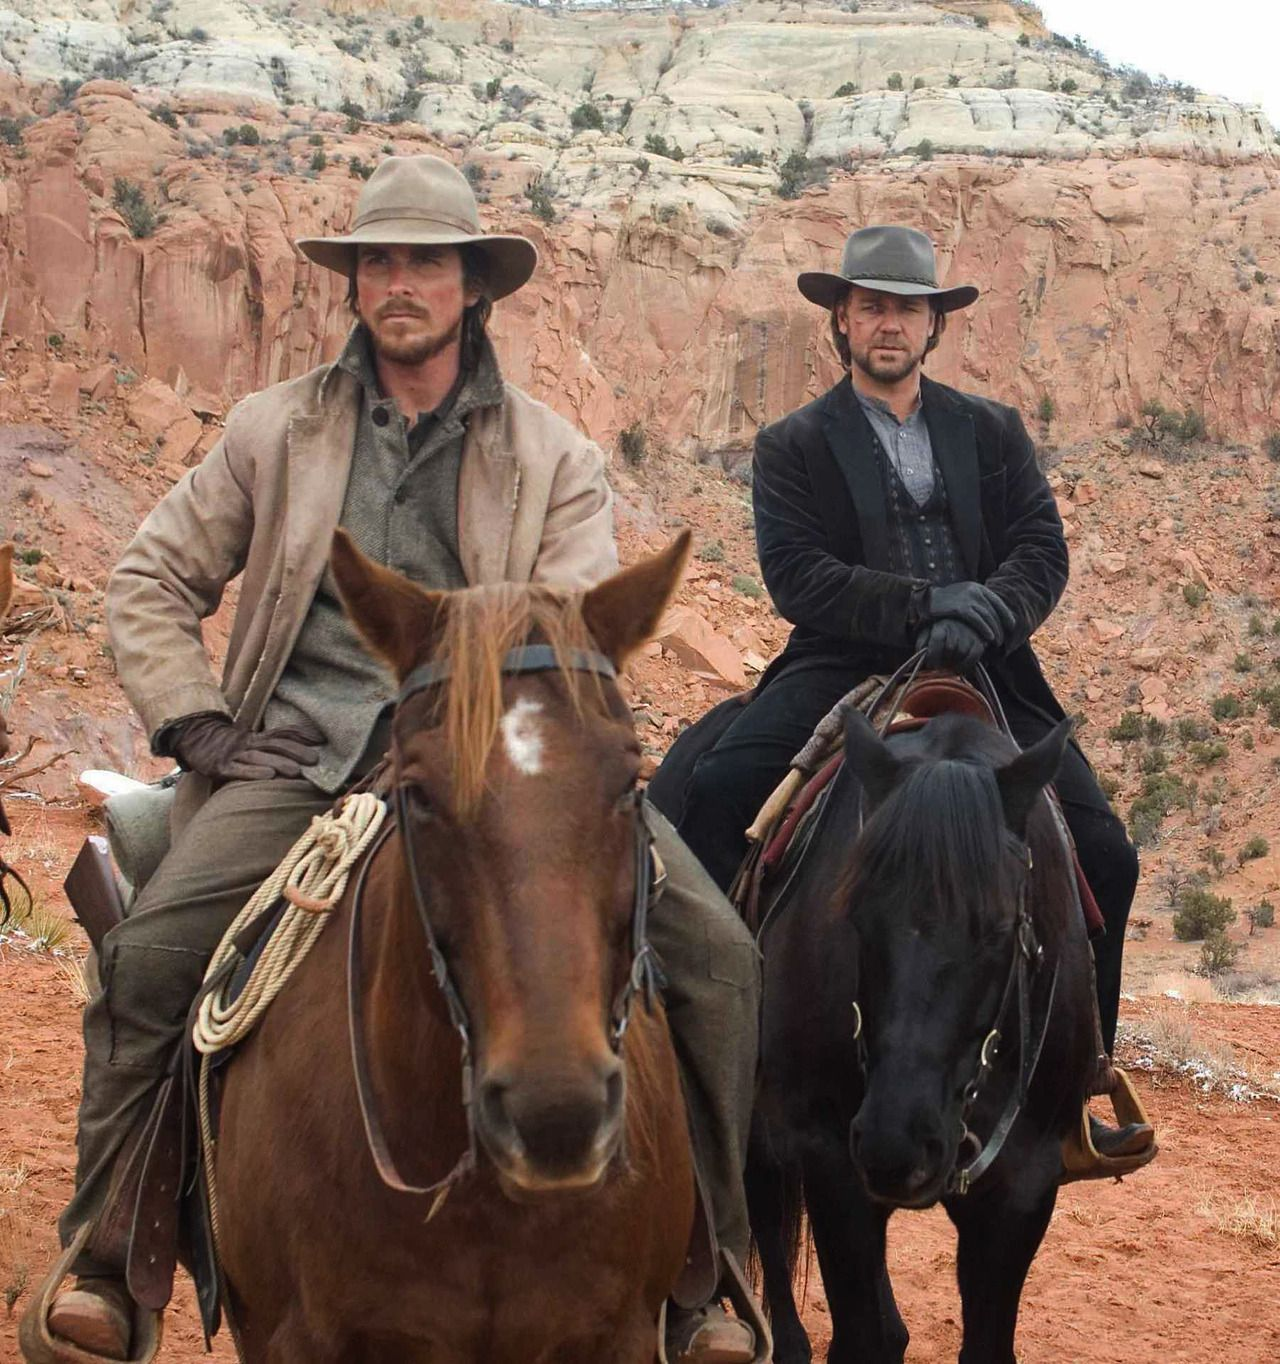 Christian Bale Russell Crowe In 3 10 To Yuma 3 10 To Yuma Yuma Western Movies